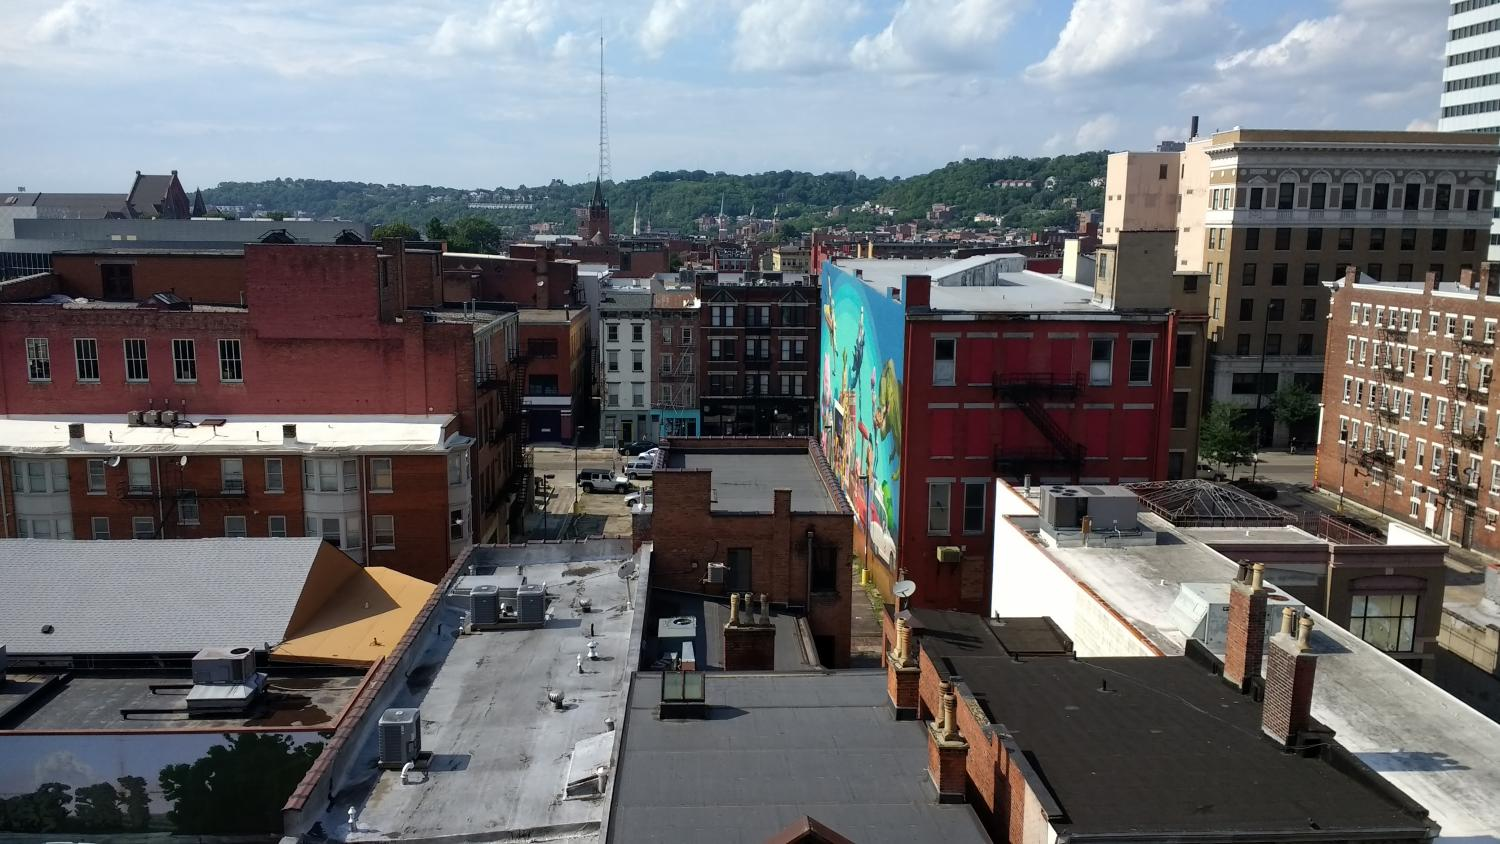 The rooftops of downtown Cincinnati.